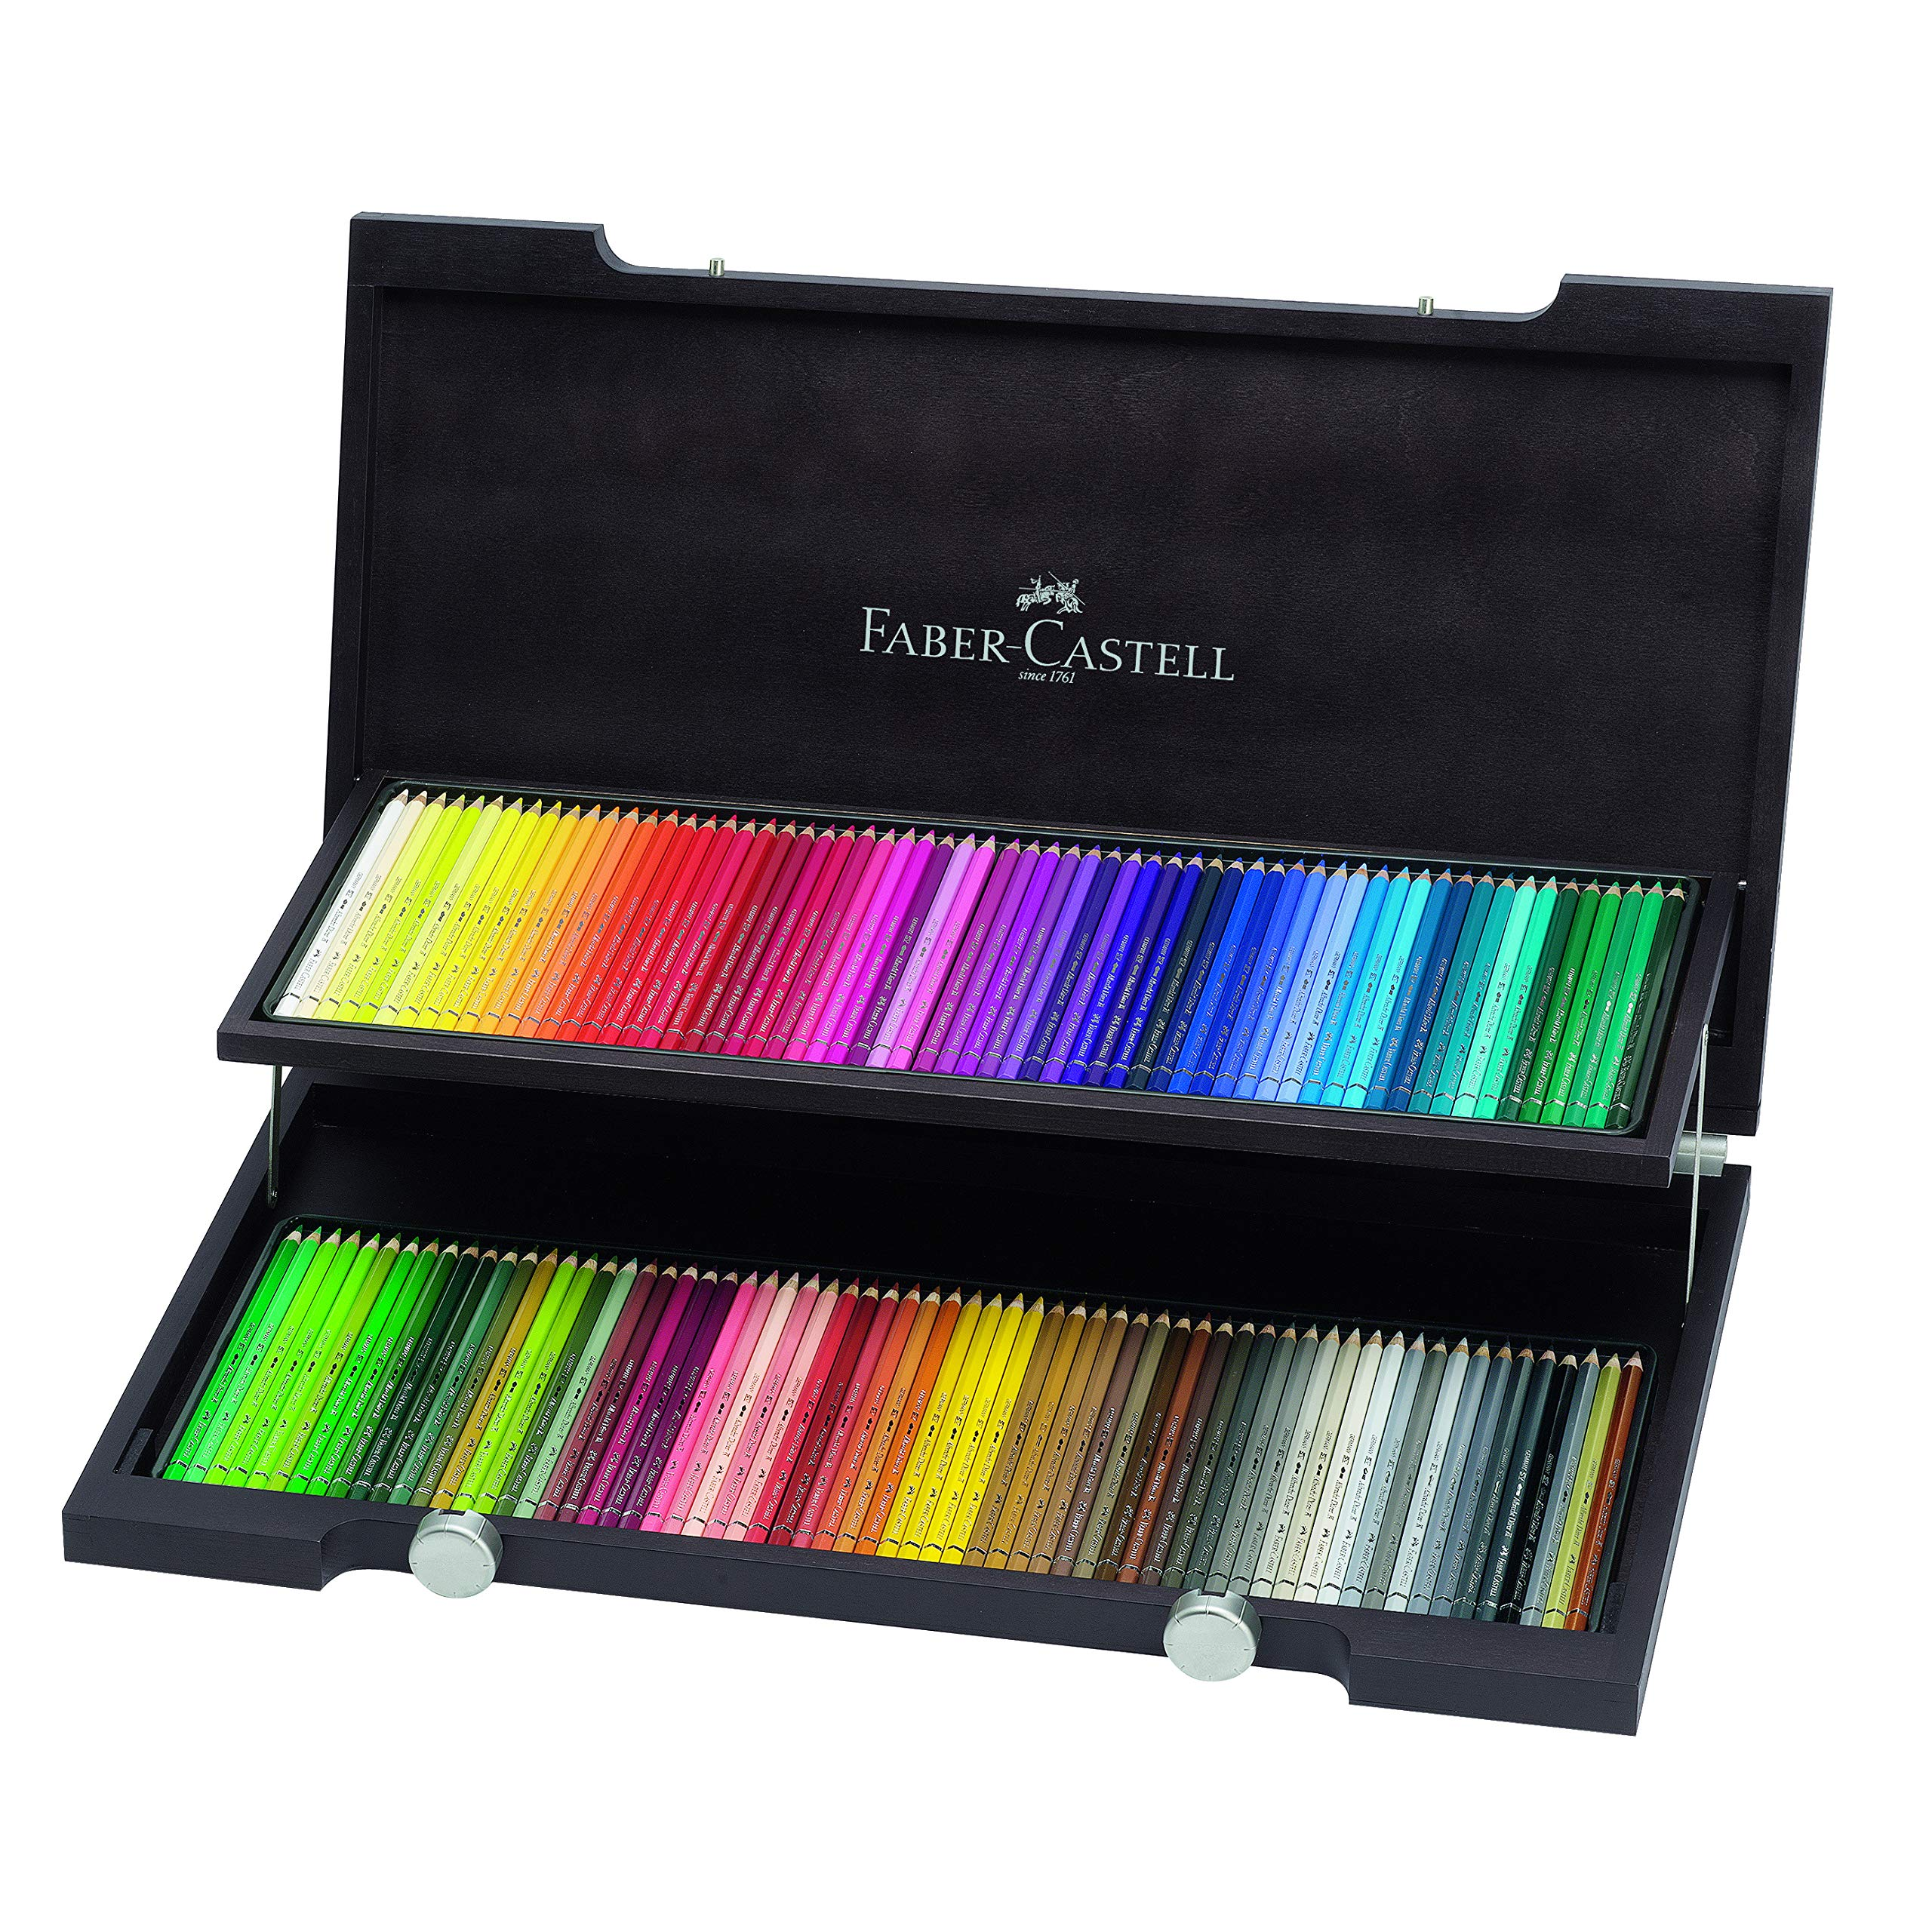 Faber-Castell Albrecht Durer Watercolor Pencil Wood Case, Set of 120 Colors (FC117513)